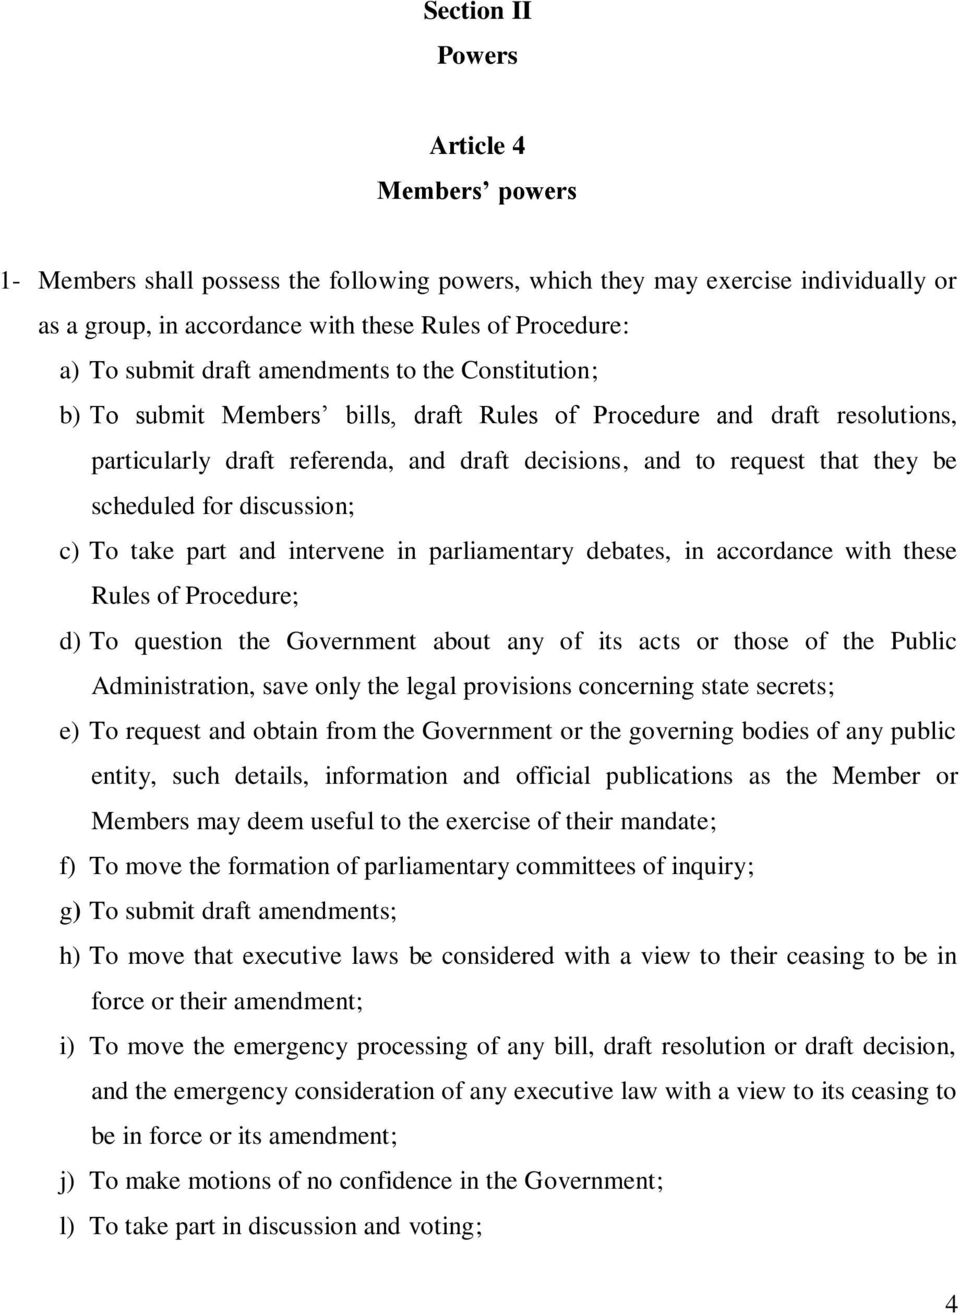 scheduled for discussion; c) To take part and intervene in parliamentary debates, in accordance with these Rules of Procedure; d) To question the Government about any of its acts or those of the